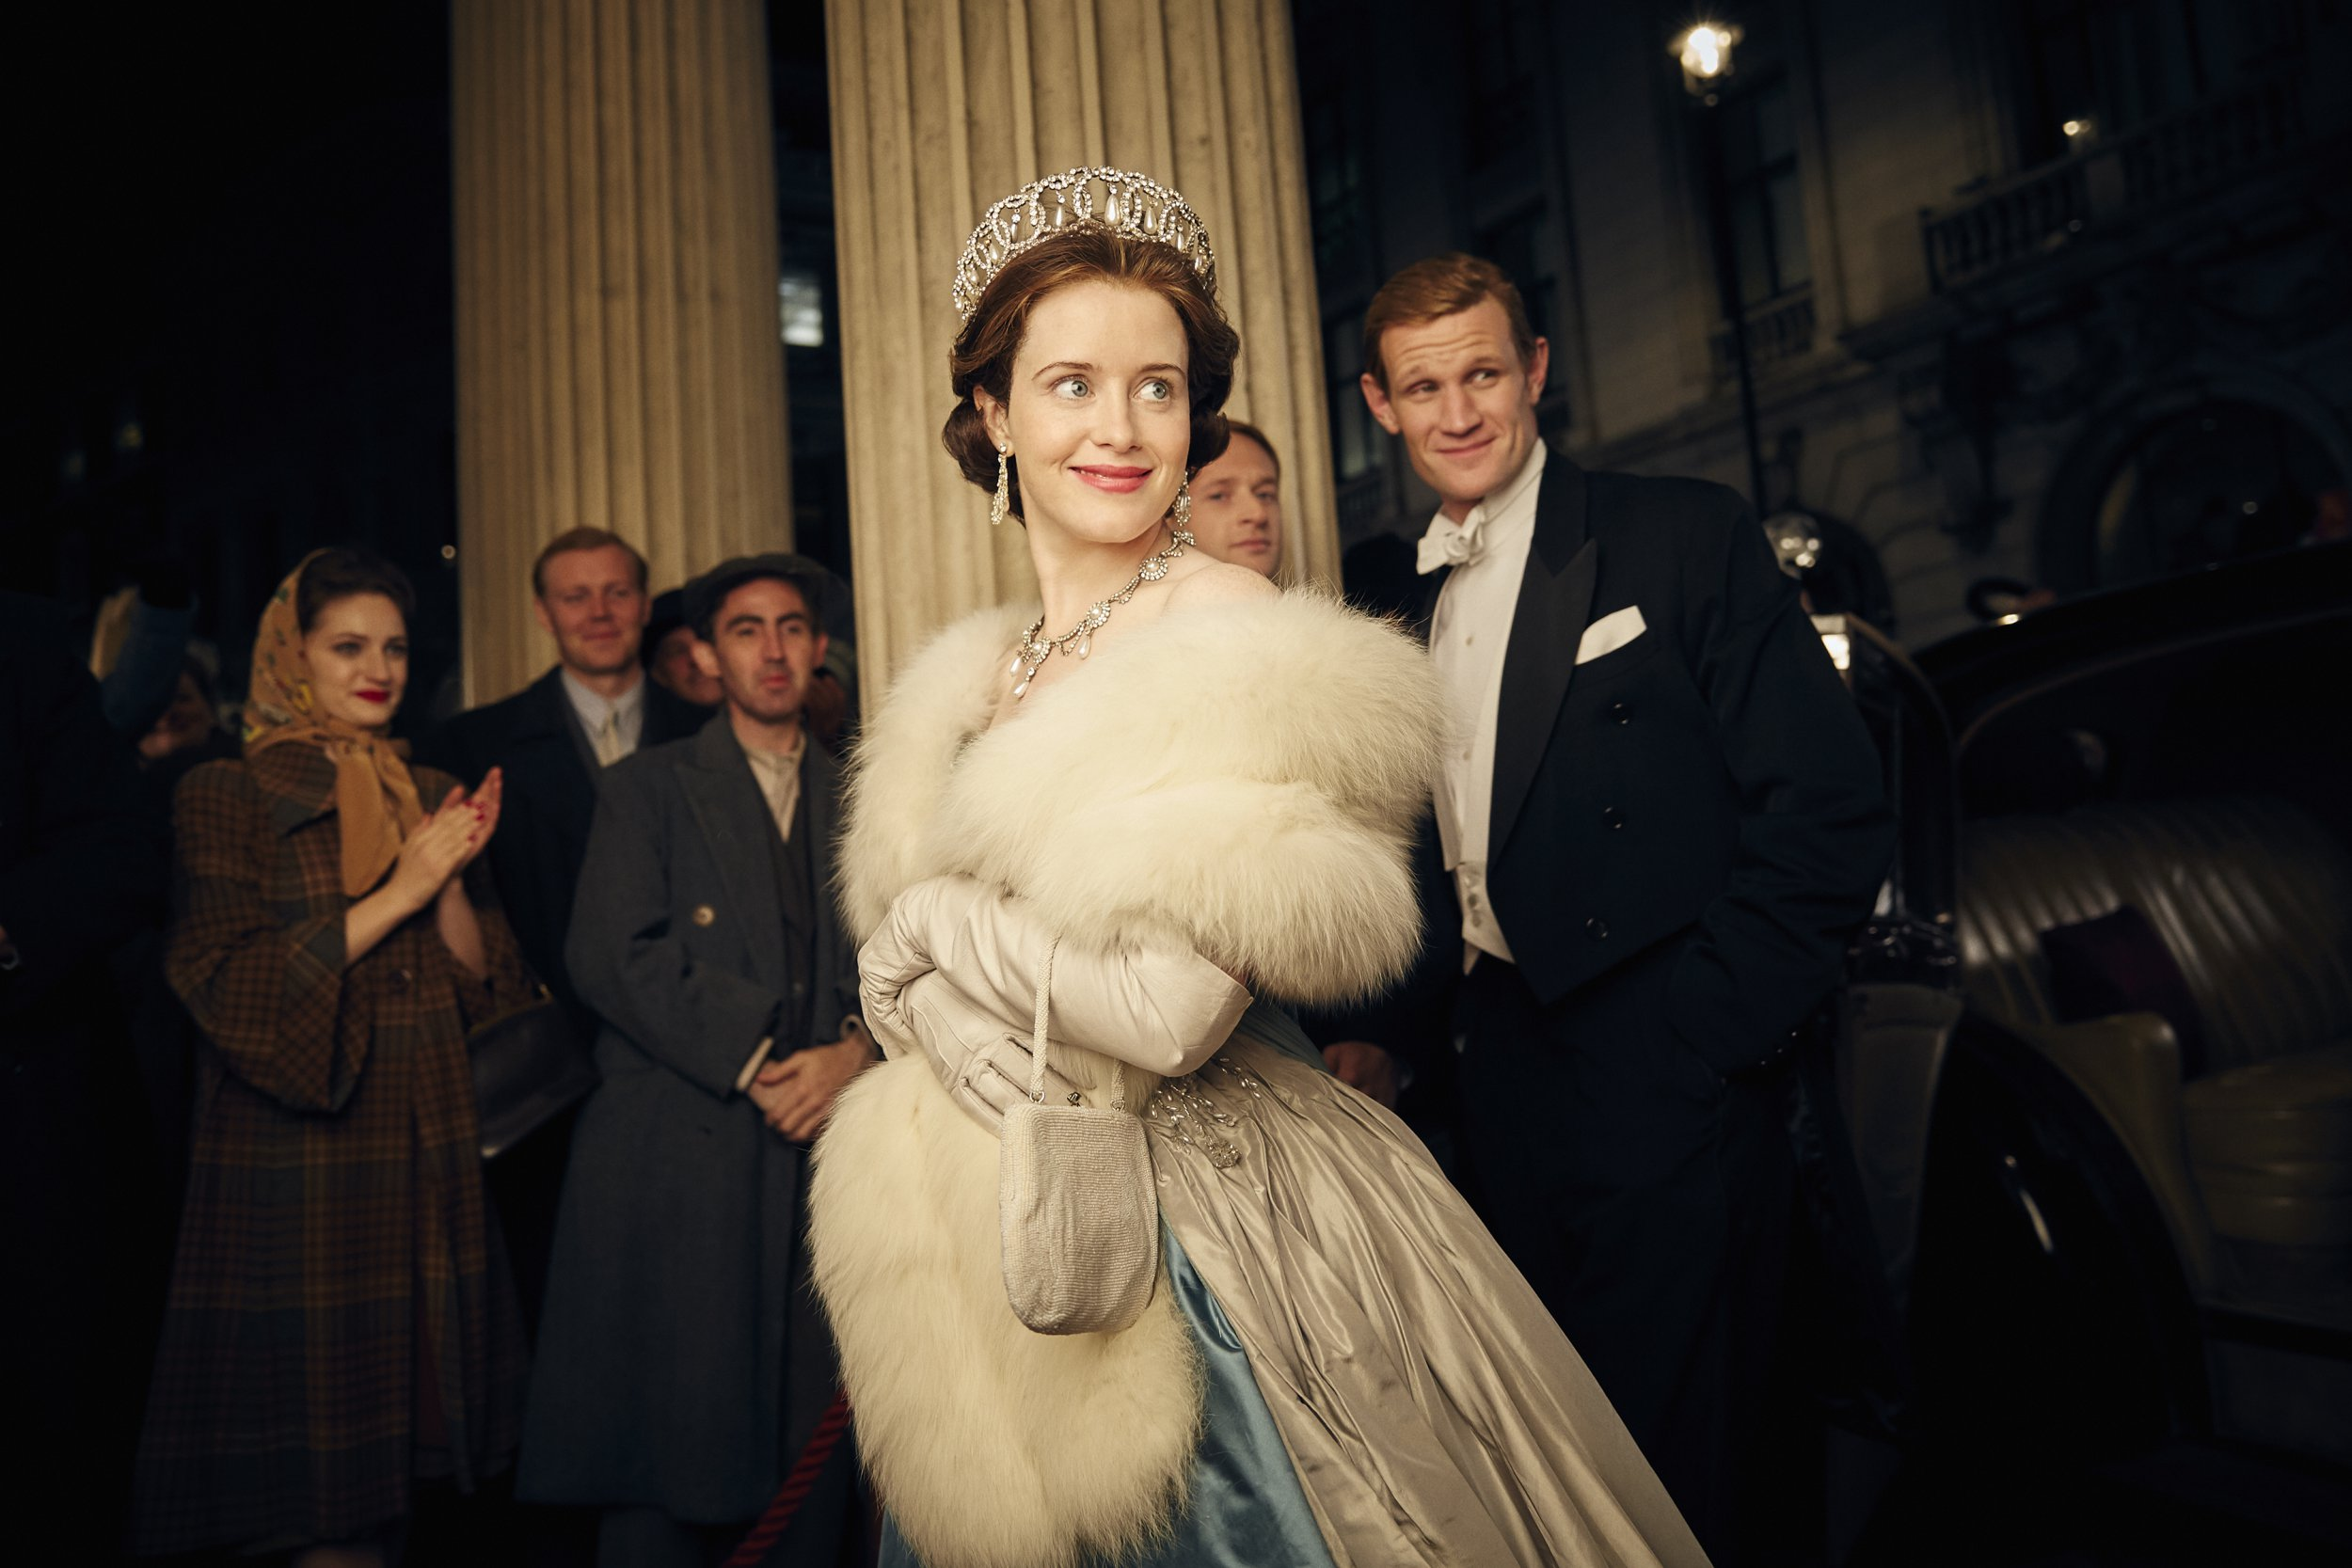 The Crown's Claire Foy says gender pay scandal left her 'embarrassed' and has 'opened her eyes'